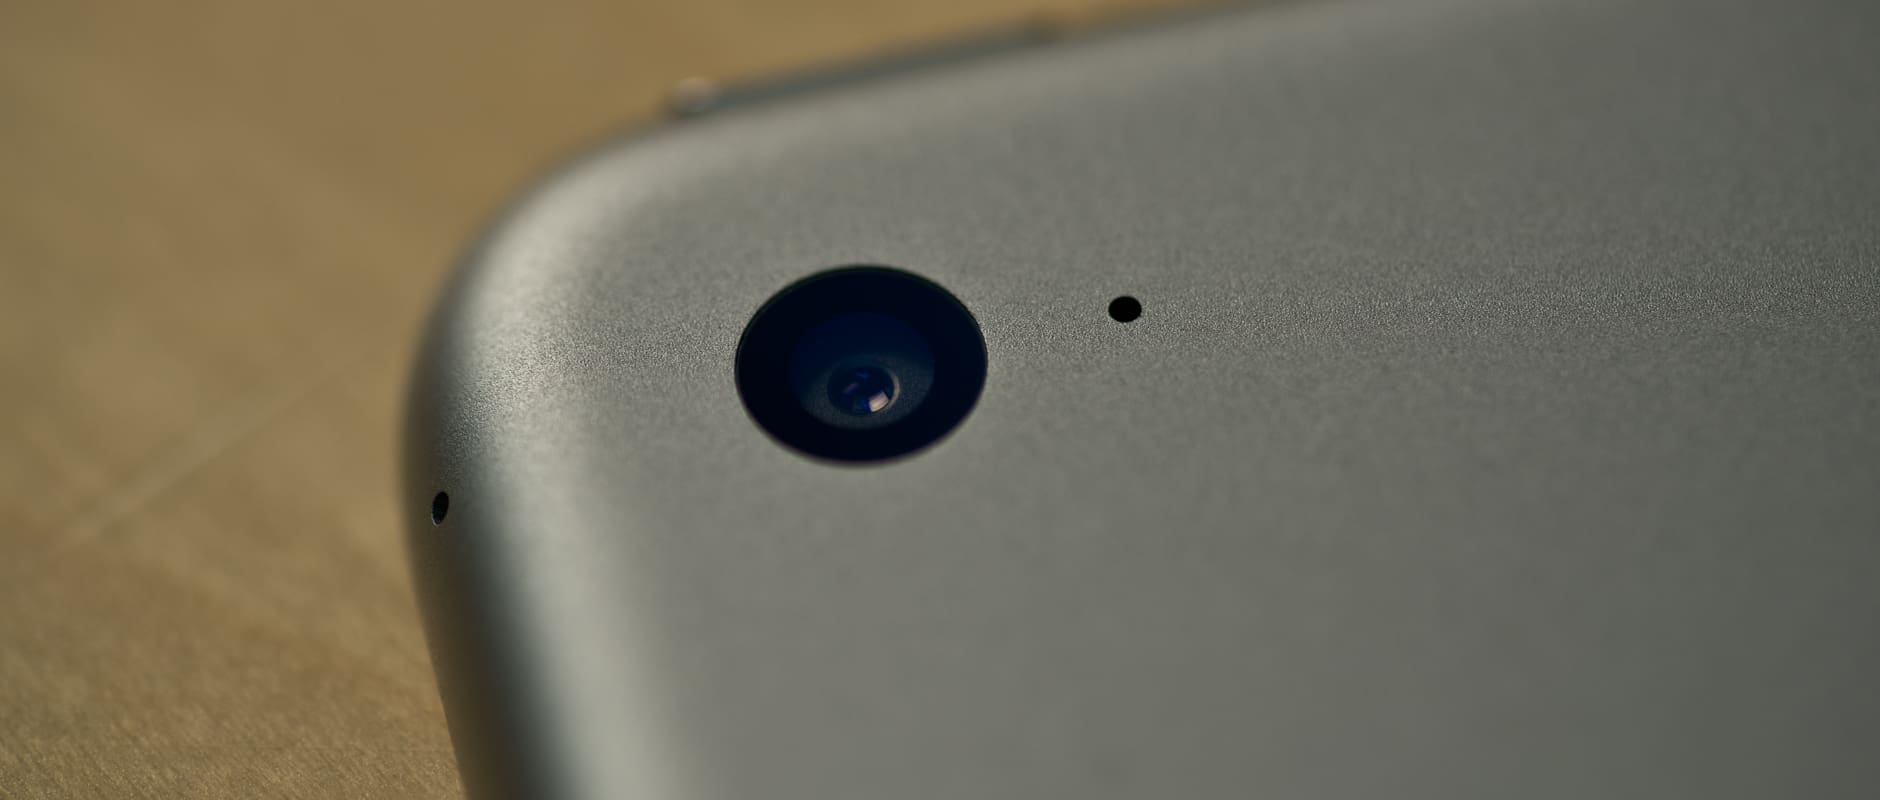 A photograph of the Apple iPad Air 2's camera.